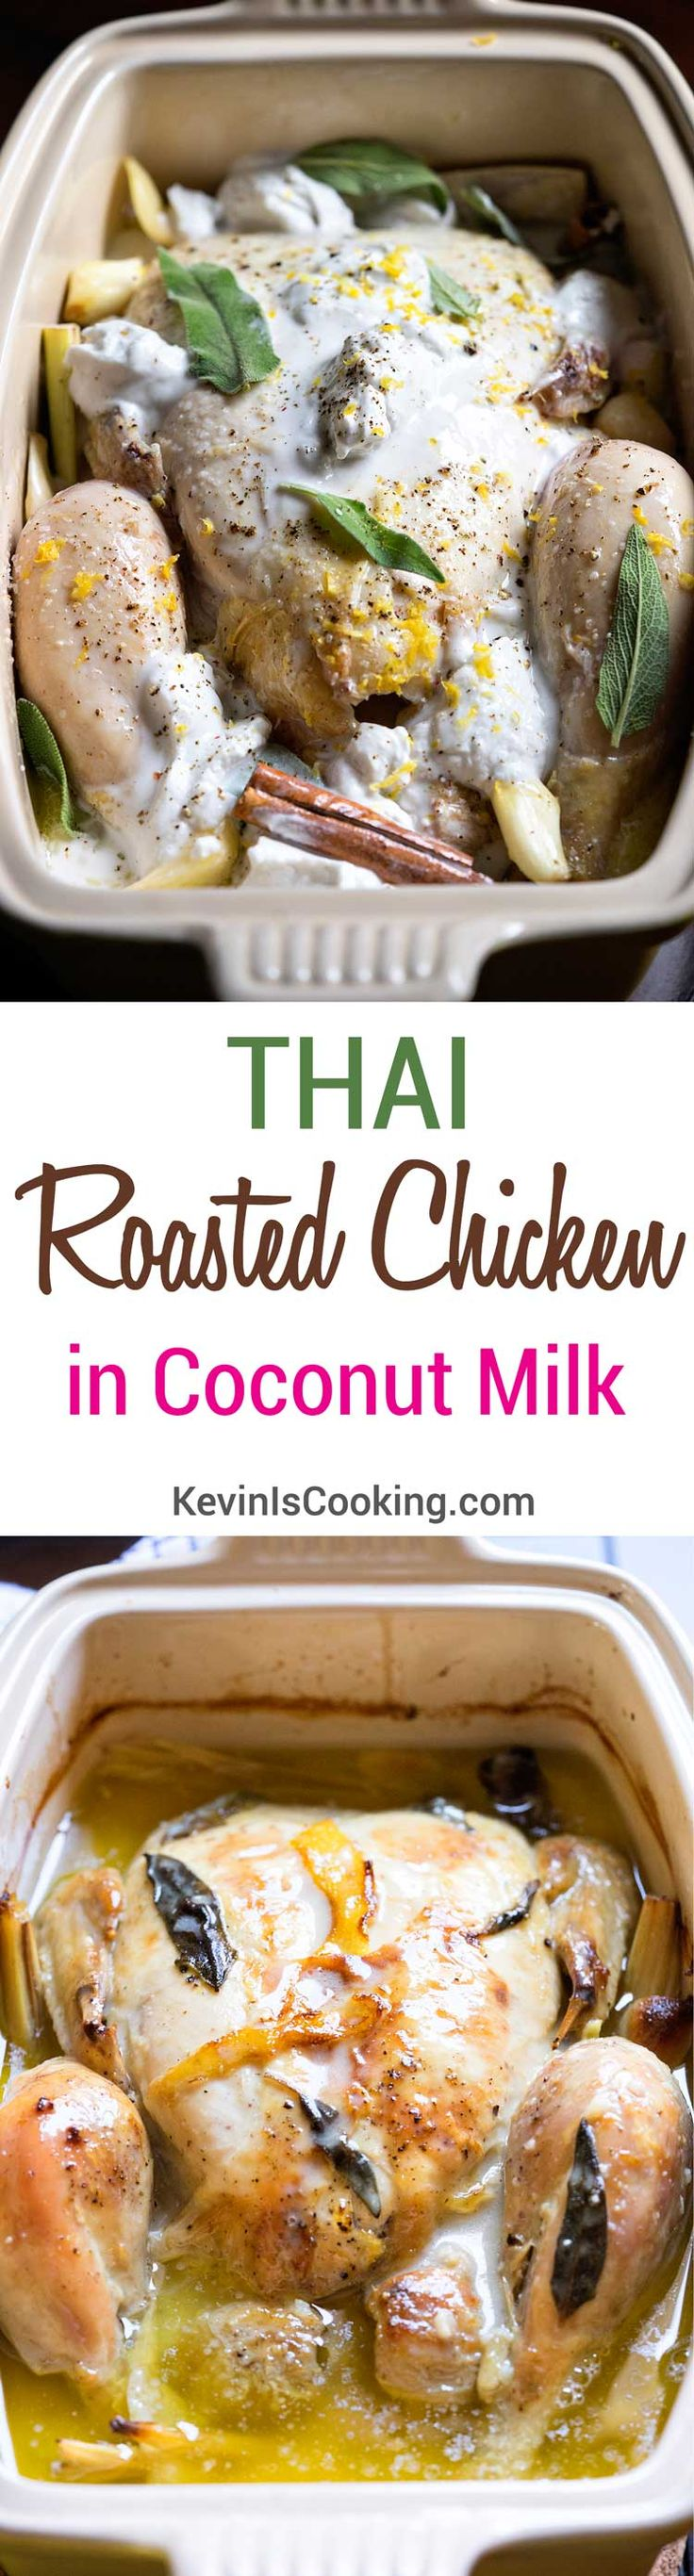 Thai Roasted Chicken in Coconut Milk. www.keviniscooking.com                                                                                                                                                      More